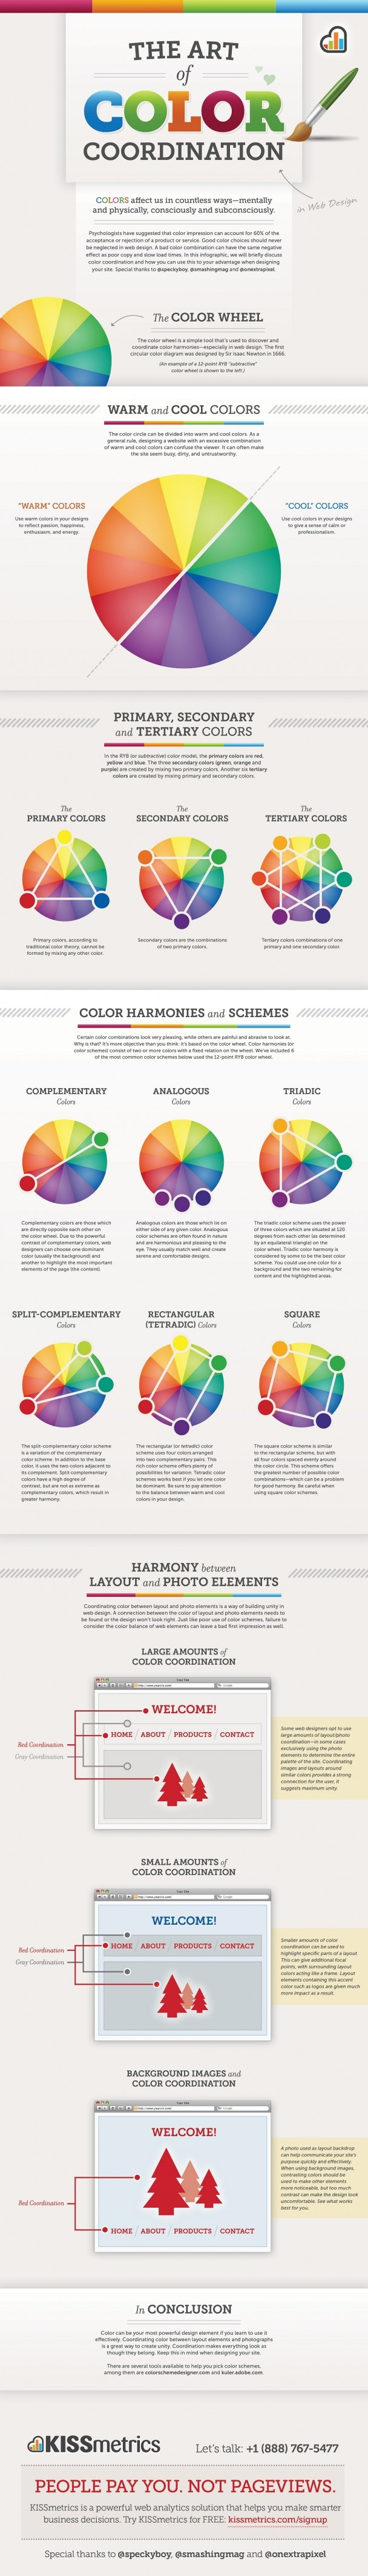 The art of color coordination http://arcreactions.com/